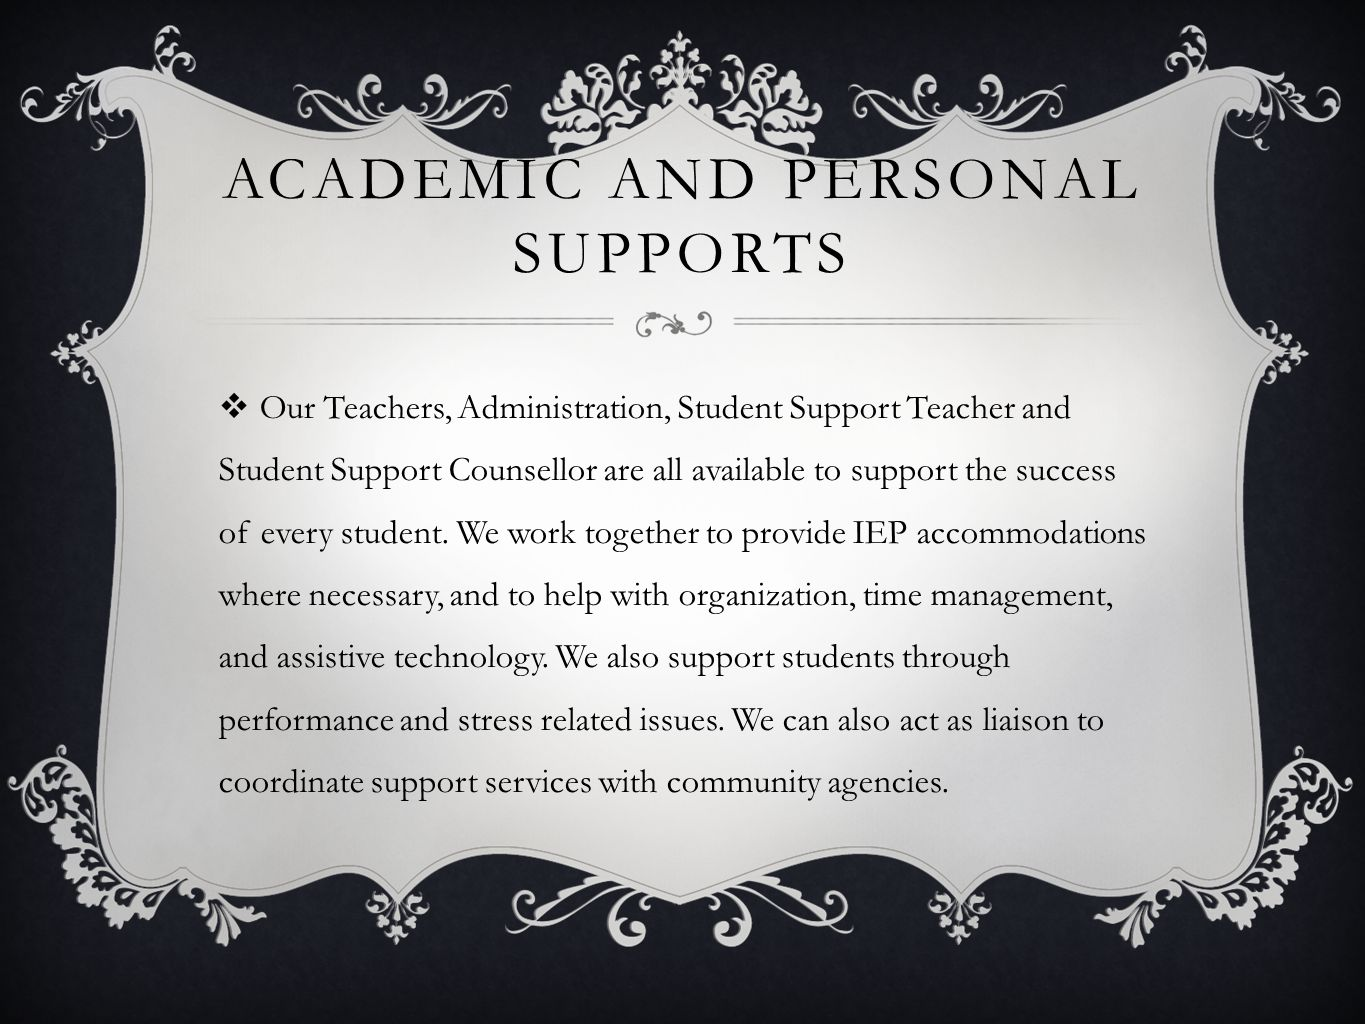 Academic and personal supports